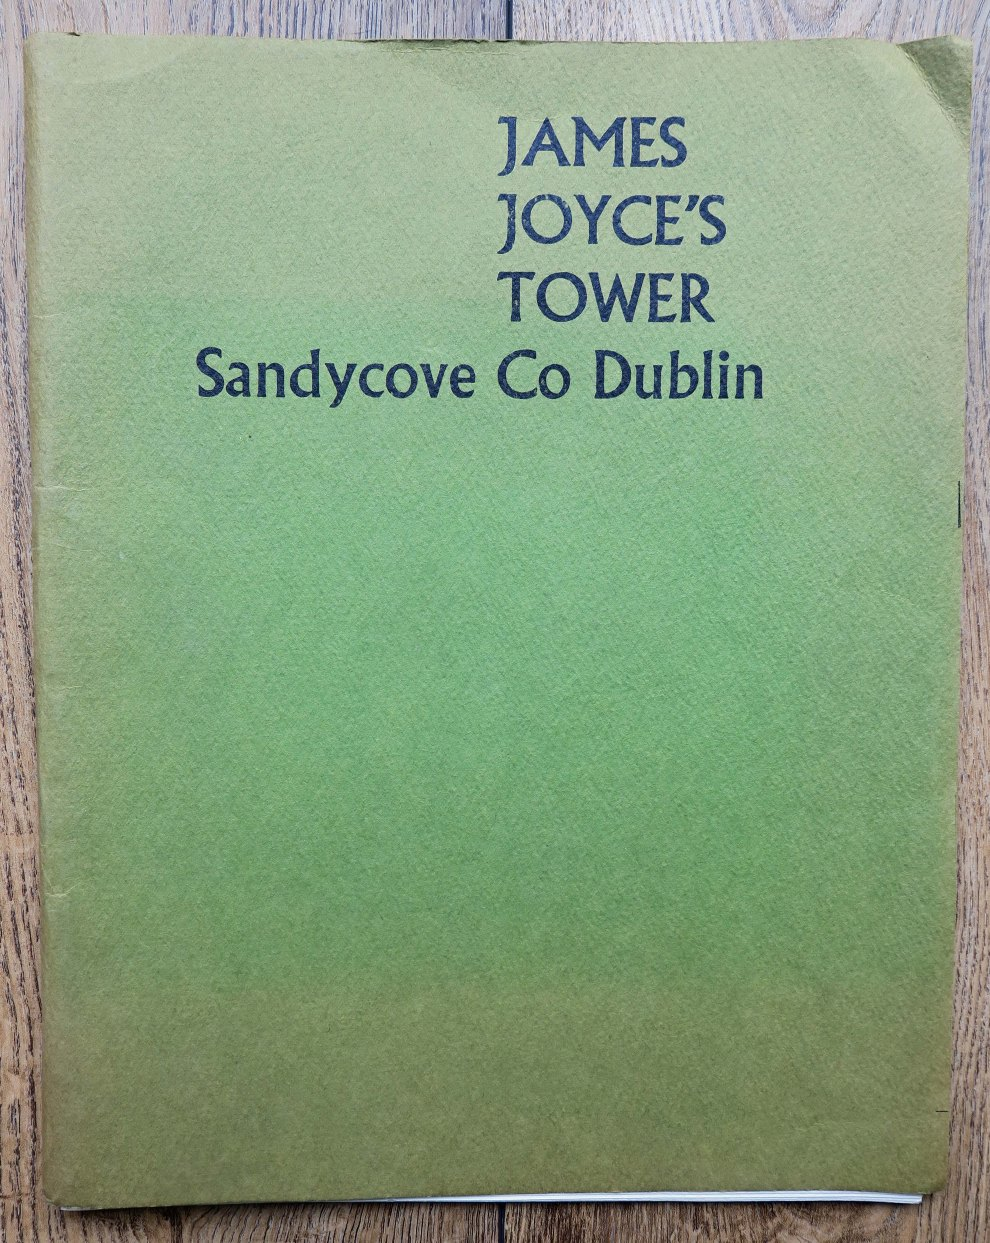 James Joyce's Tower